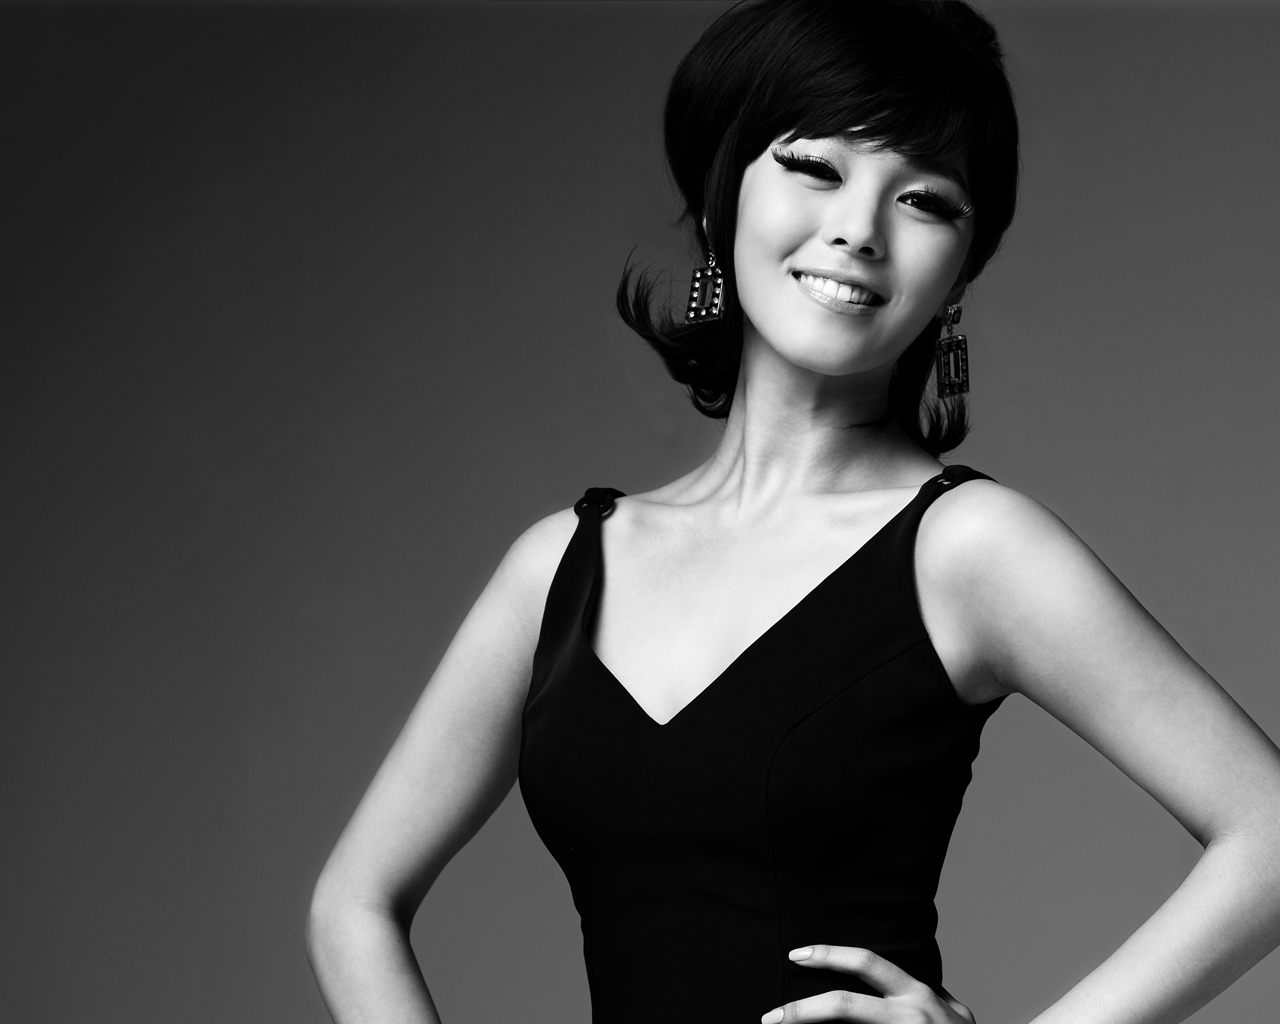 http://wondergirls.files.wordpress.com/2008/10/20089935520sun_ye.jpg